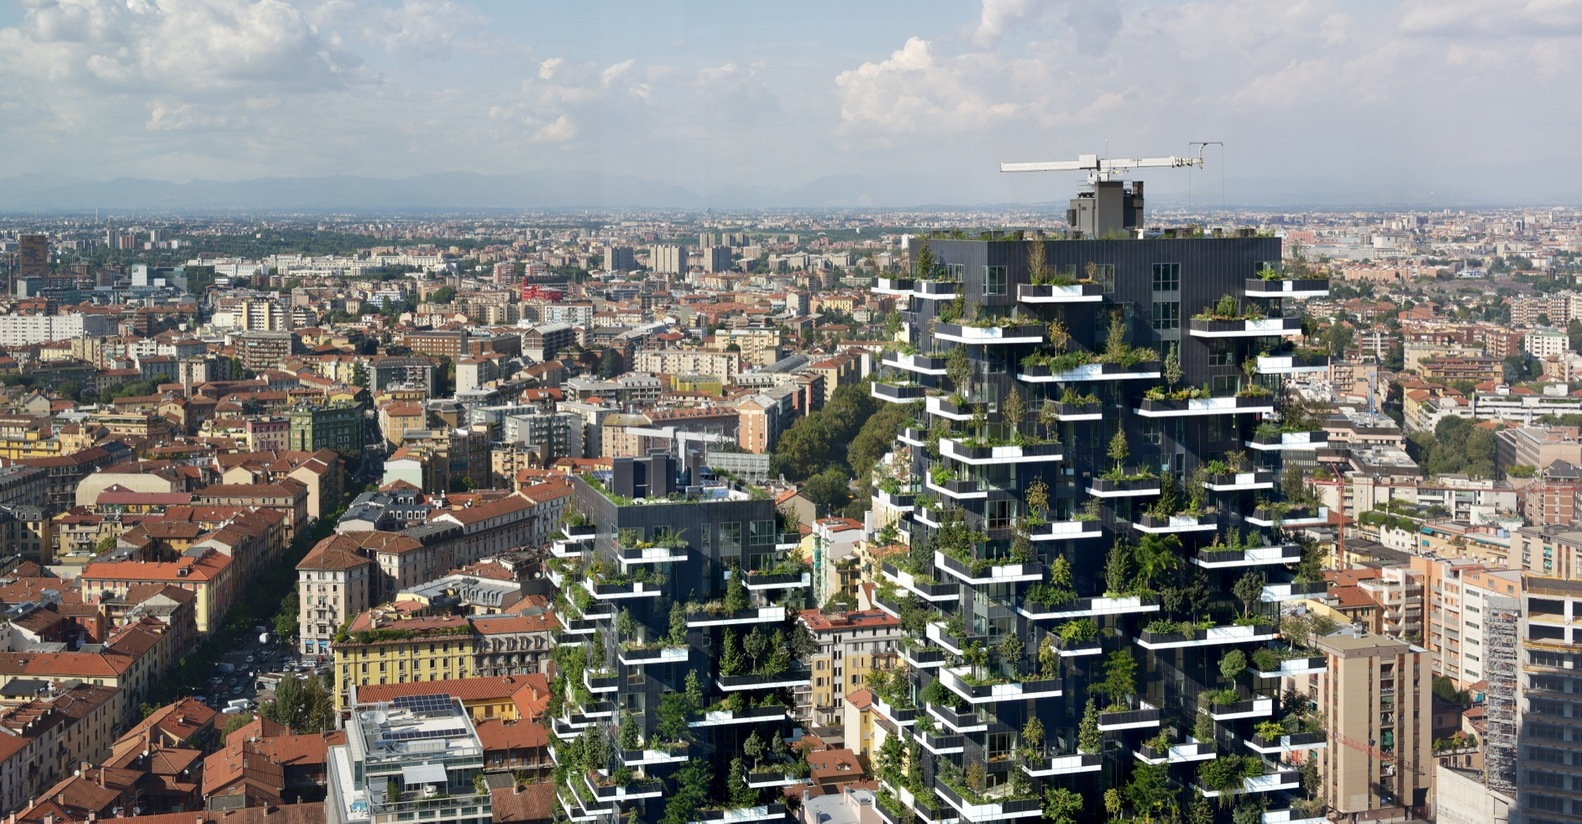 Bosco Verticale in Milan